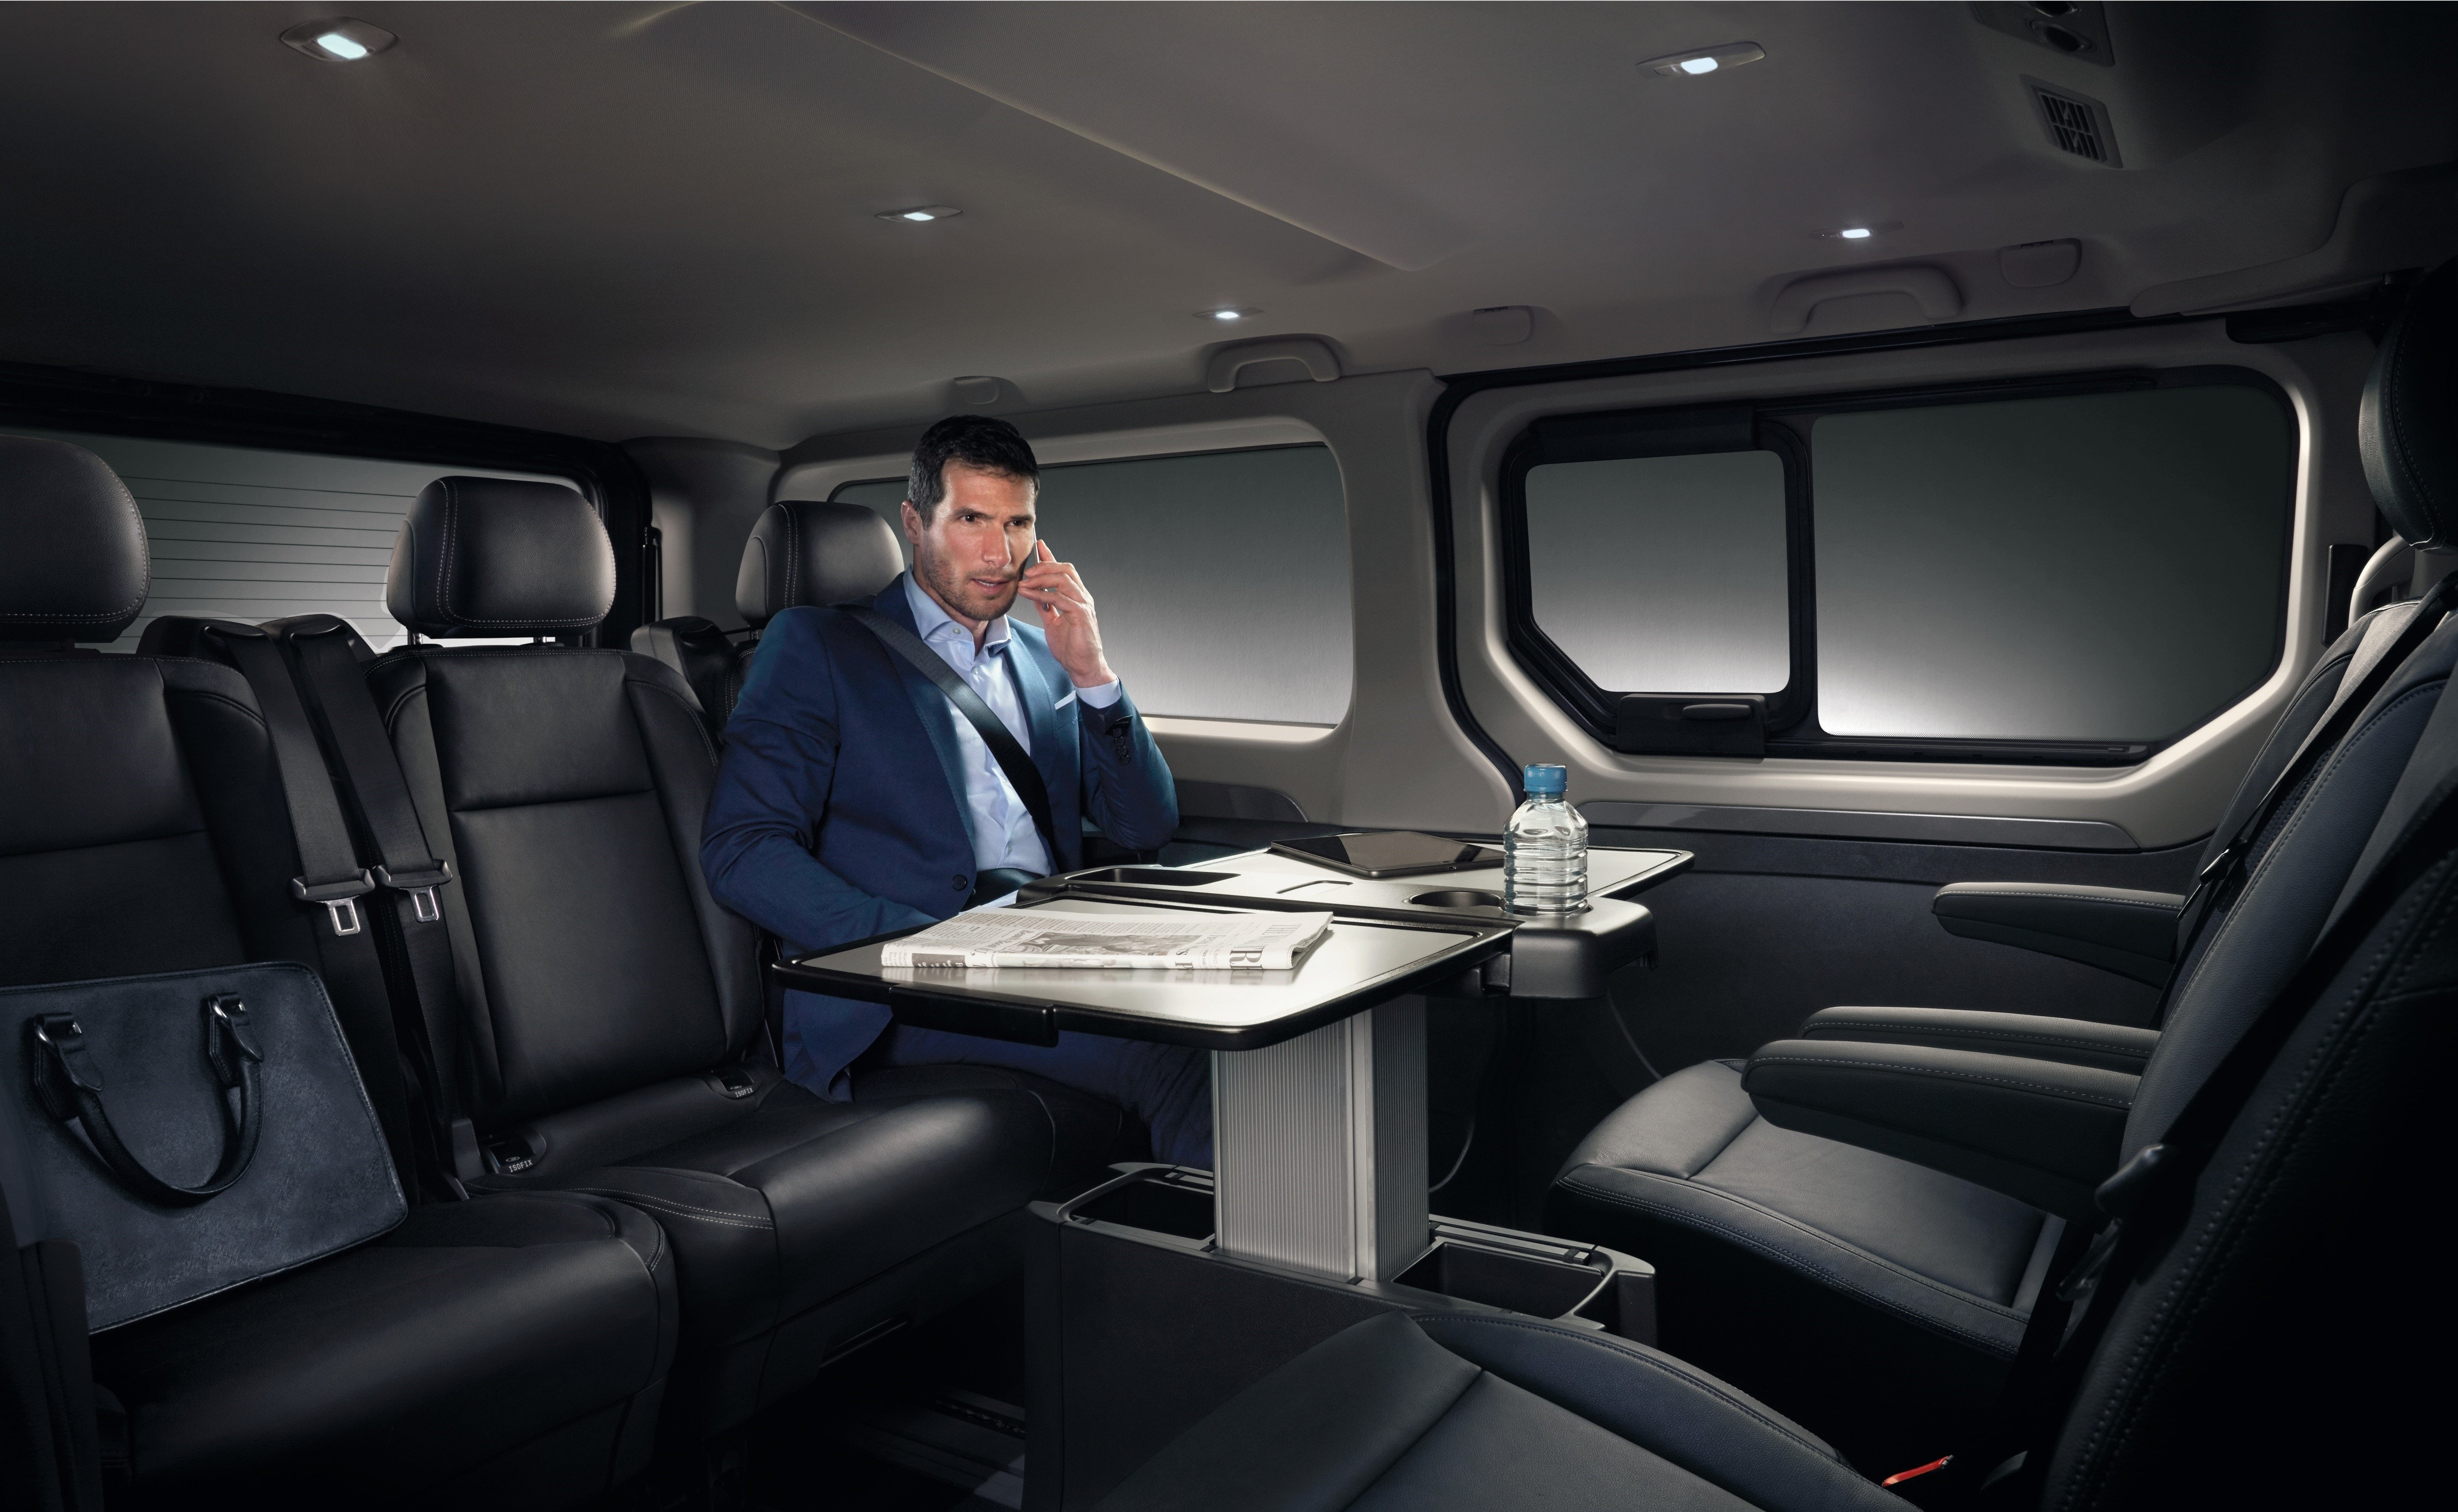 Renault le trafic spaceclass pour octobre 2017 for Renault trafic interieur